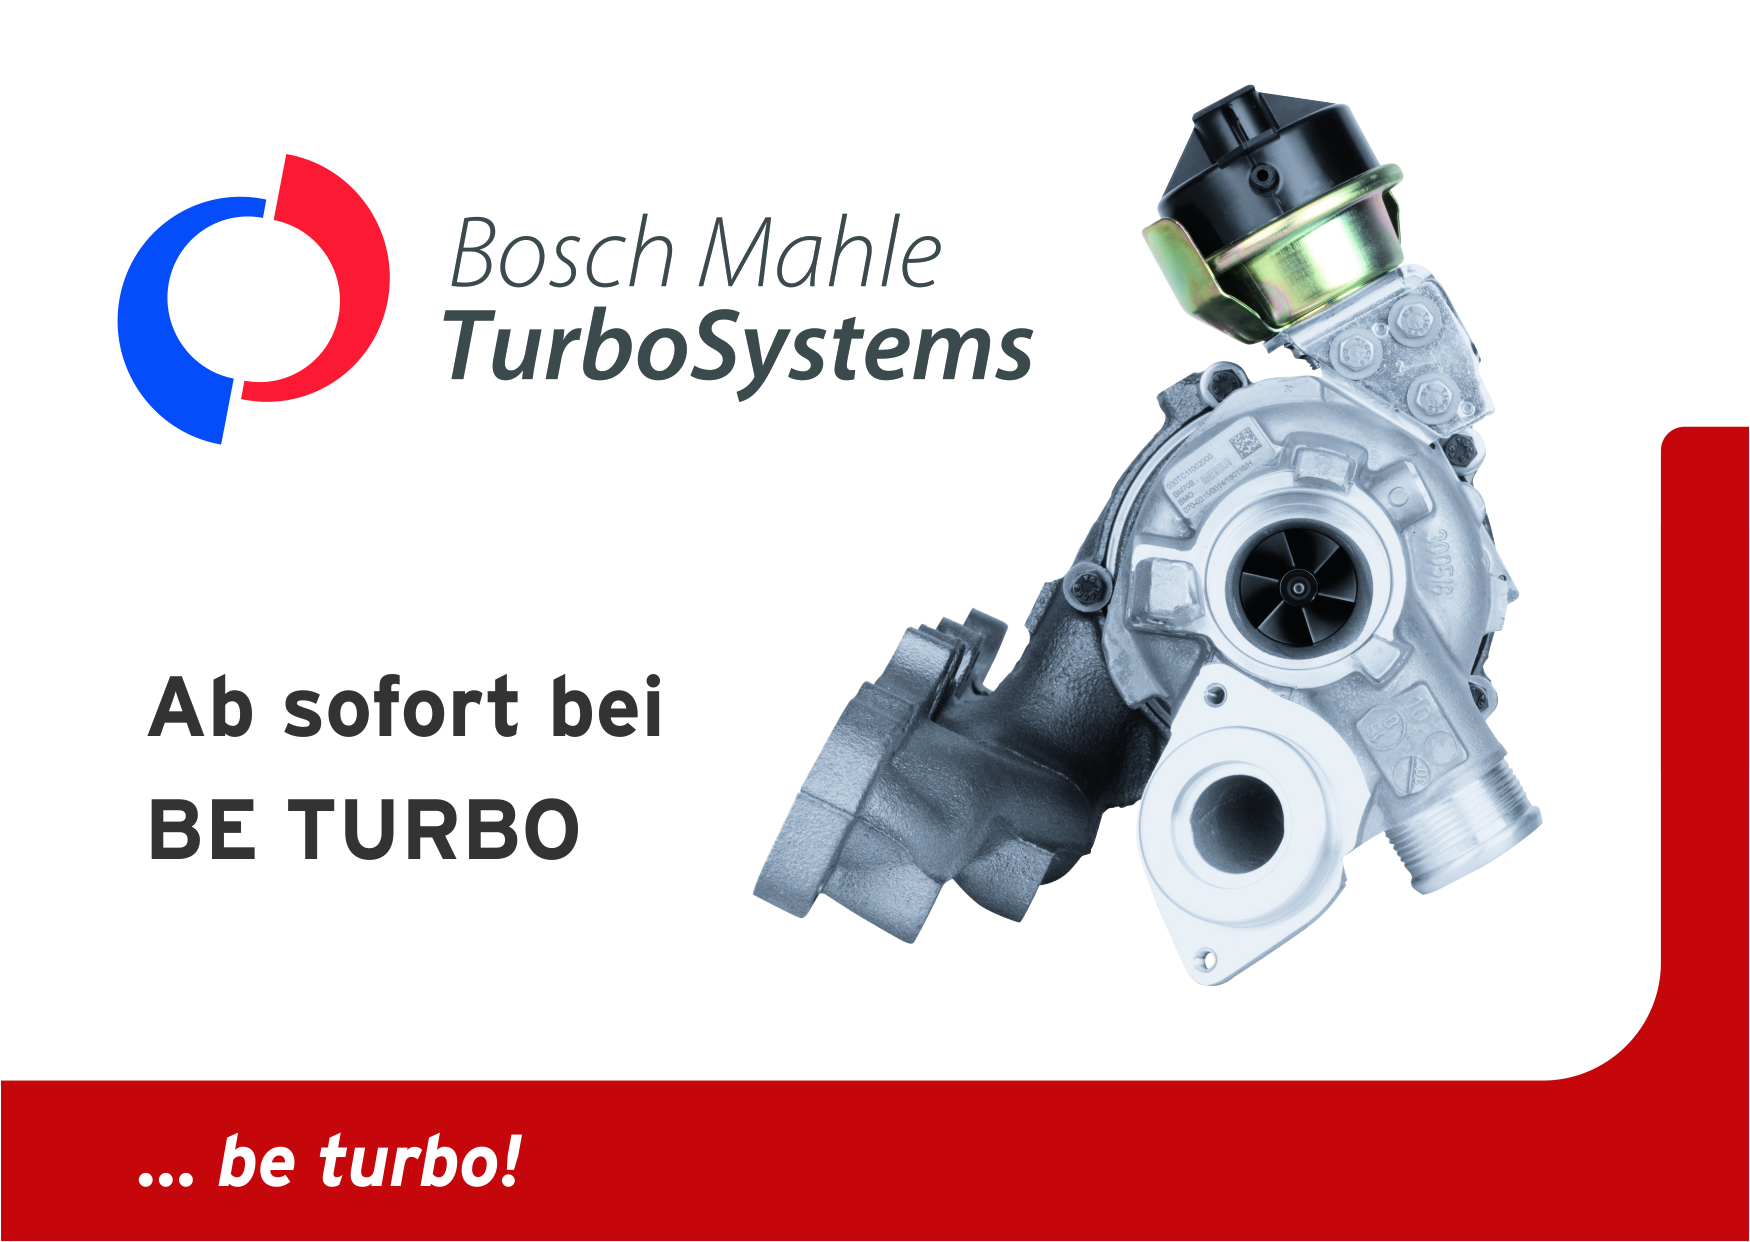 Turbolader von Bosch Mahle Turbo Systems bei BE TURBO